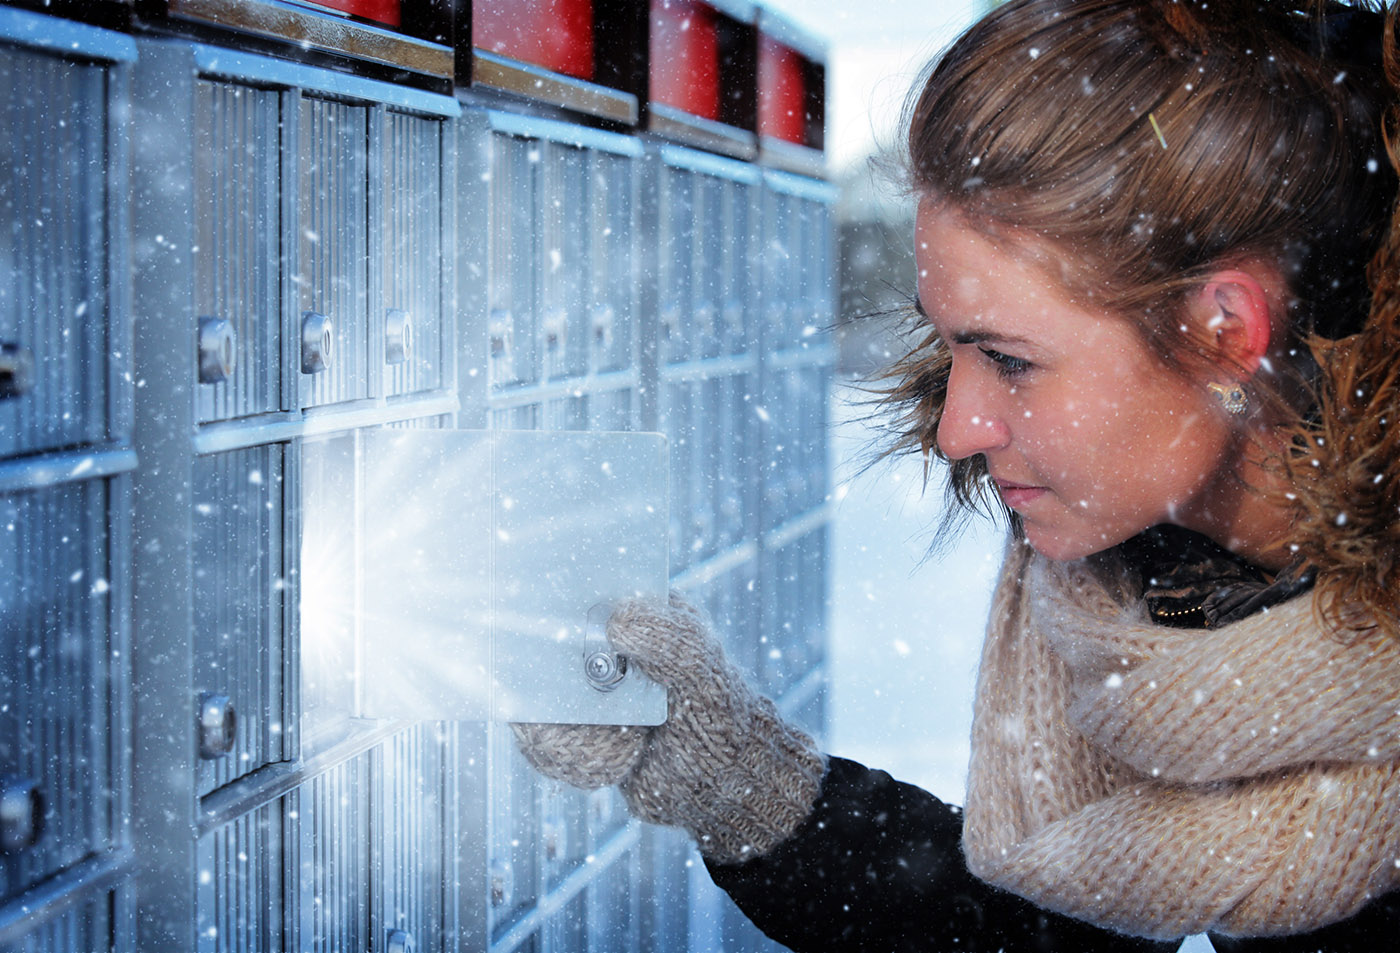 Pretty Woman Looking at Highlighted Mailbox in Winter - Stock Photos, Pictures & Images